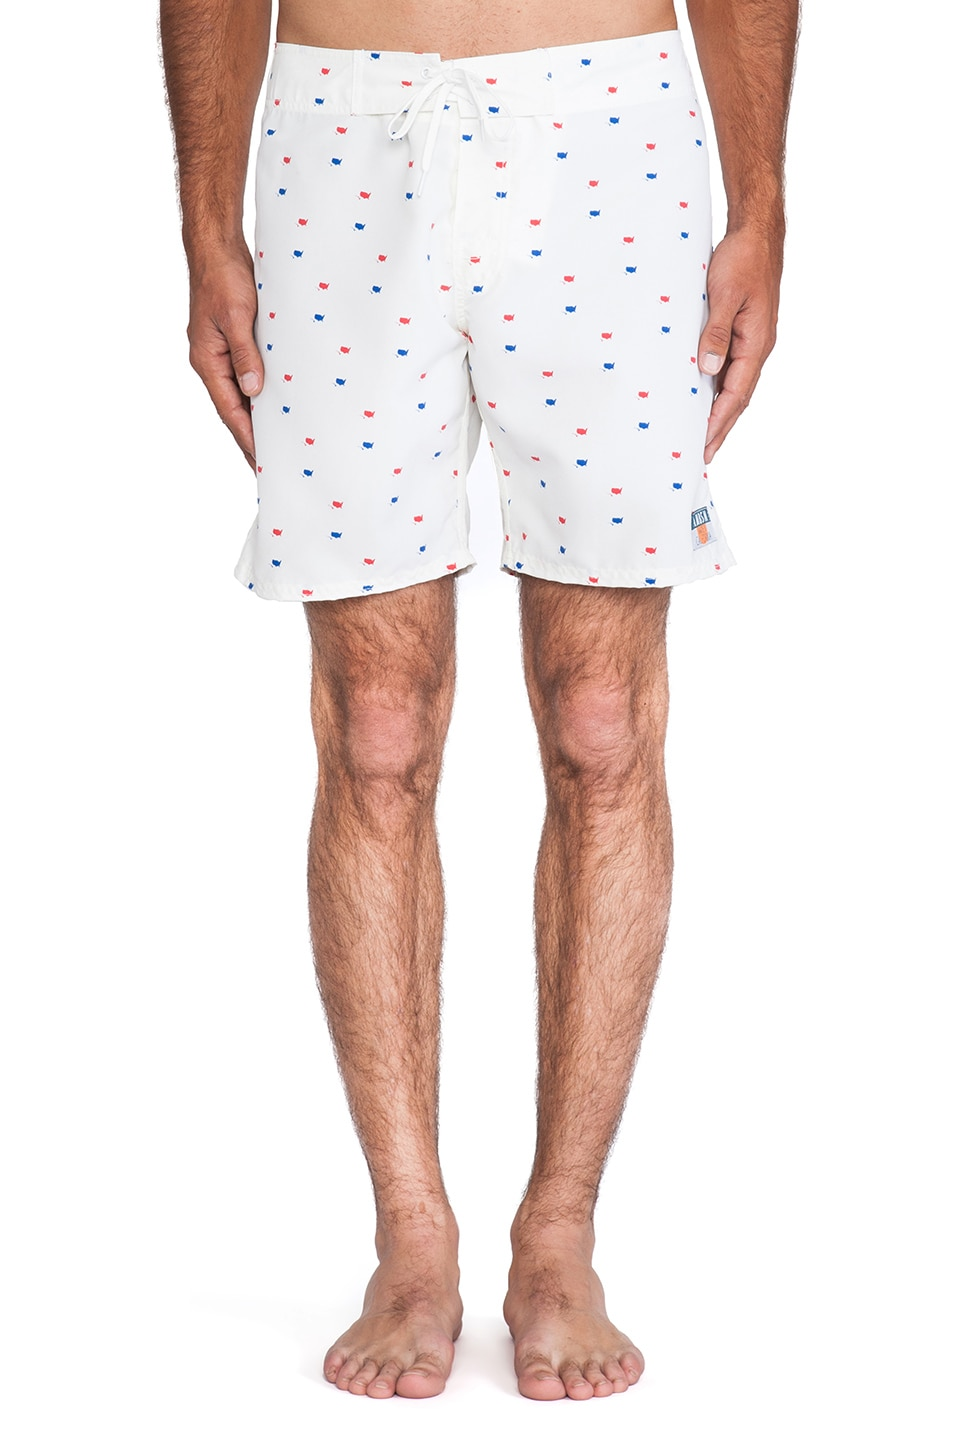 Ambsn Revolution Boardshort in Cream